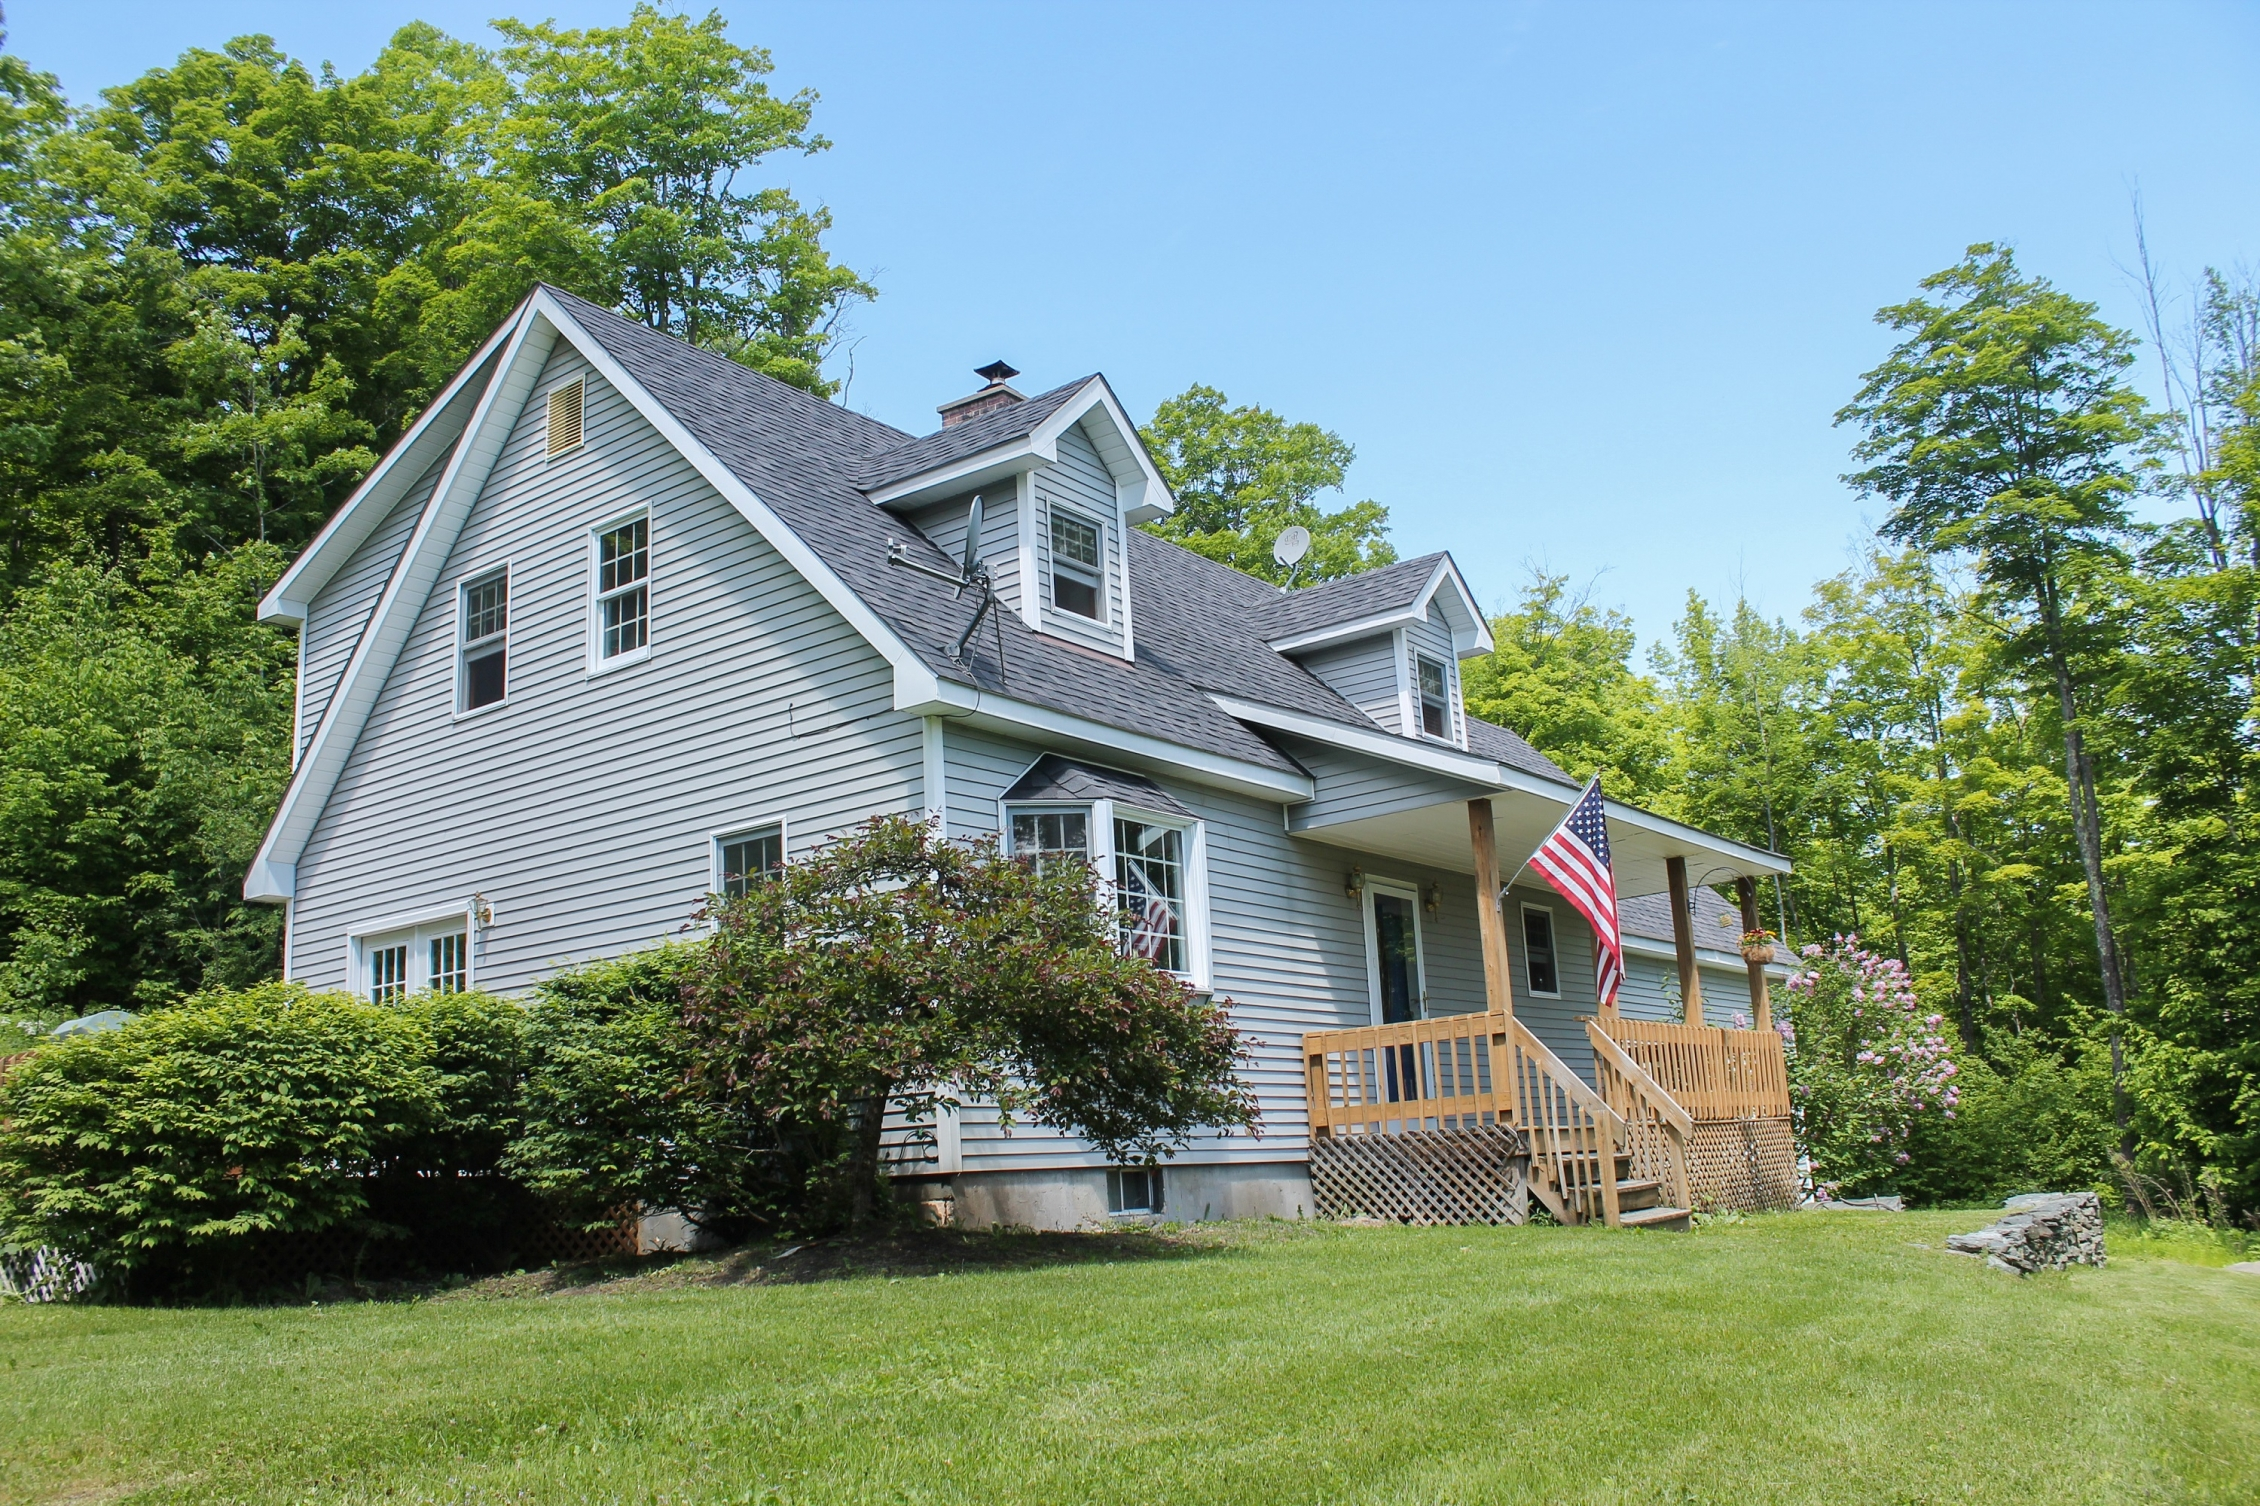 Single Family Home for Sale at 351 Woods, Northfield 351 Woods Rd Northfield, Vermont, 05663 United States